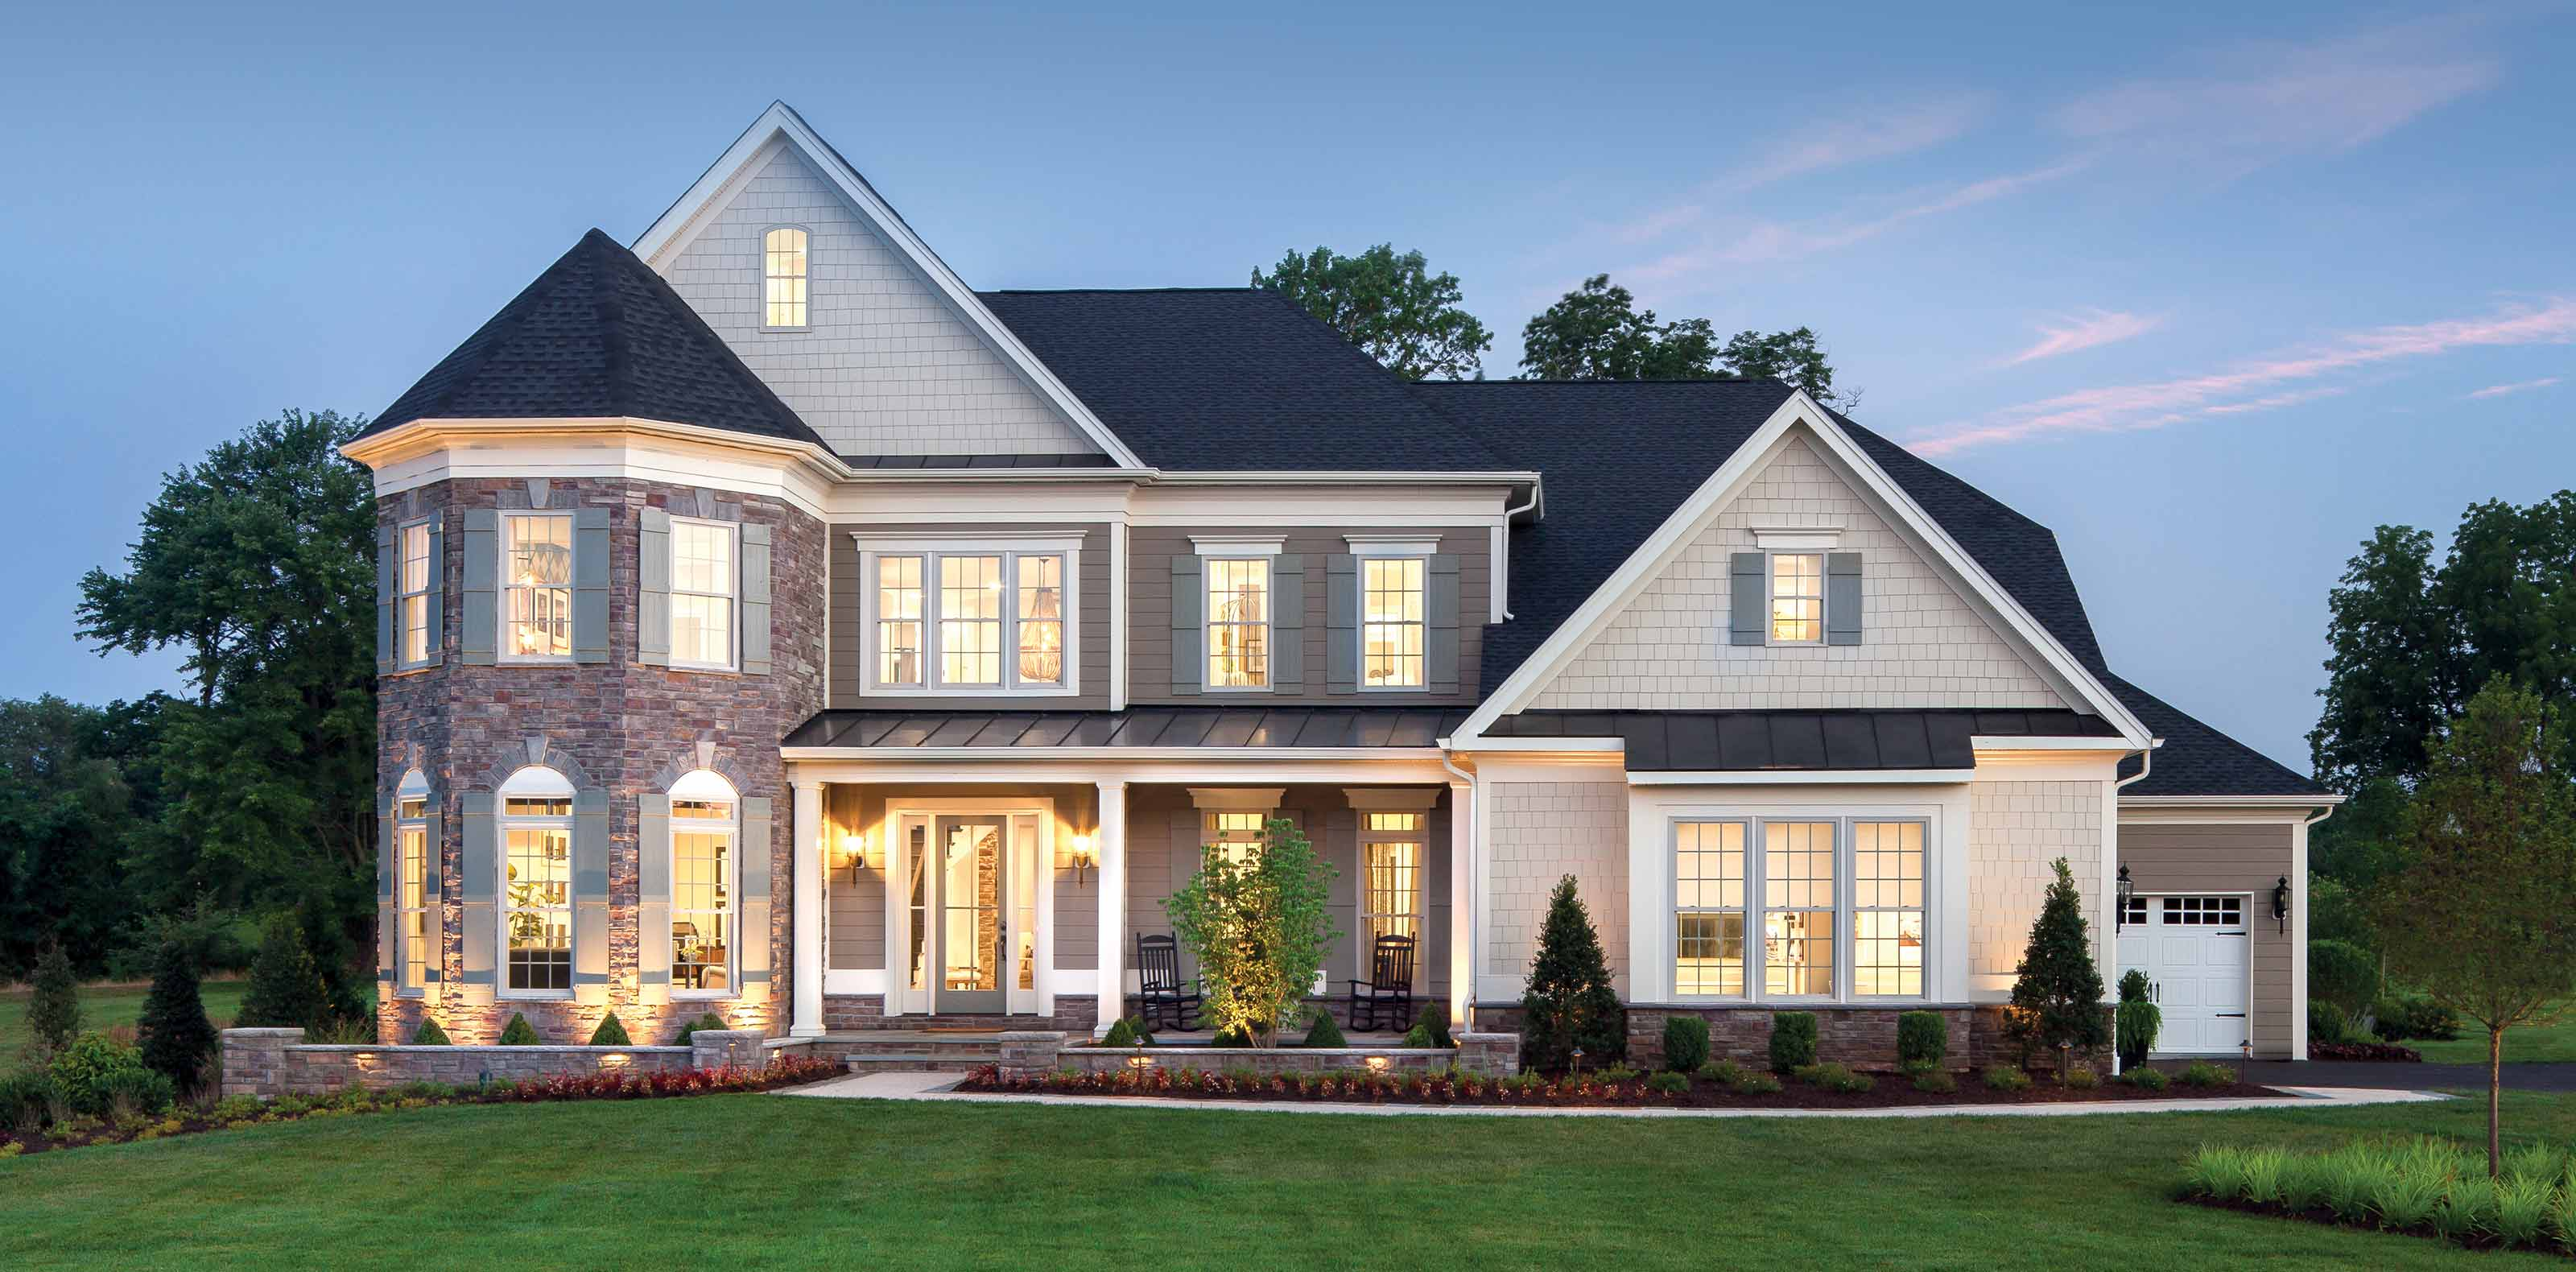 The Ridgeview Lexington at Weatherstone in Baldwin, Maryland